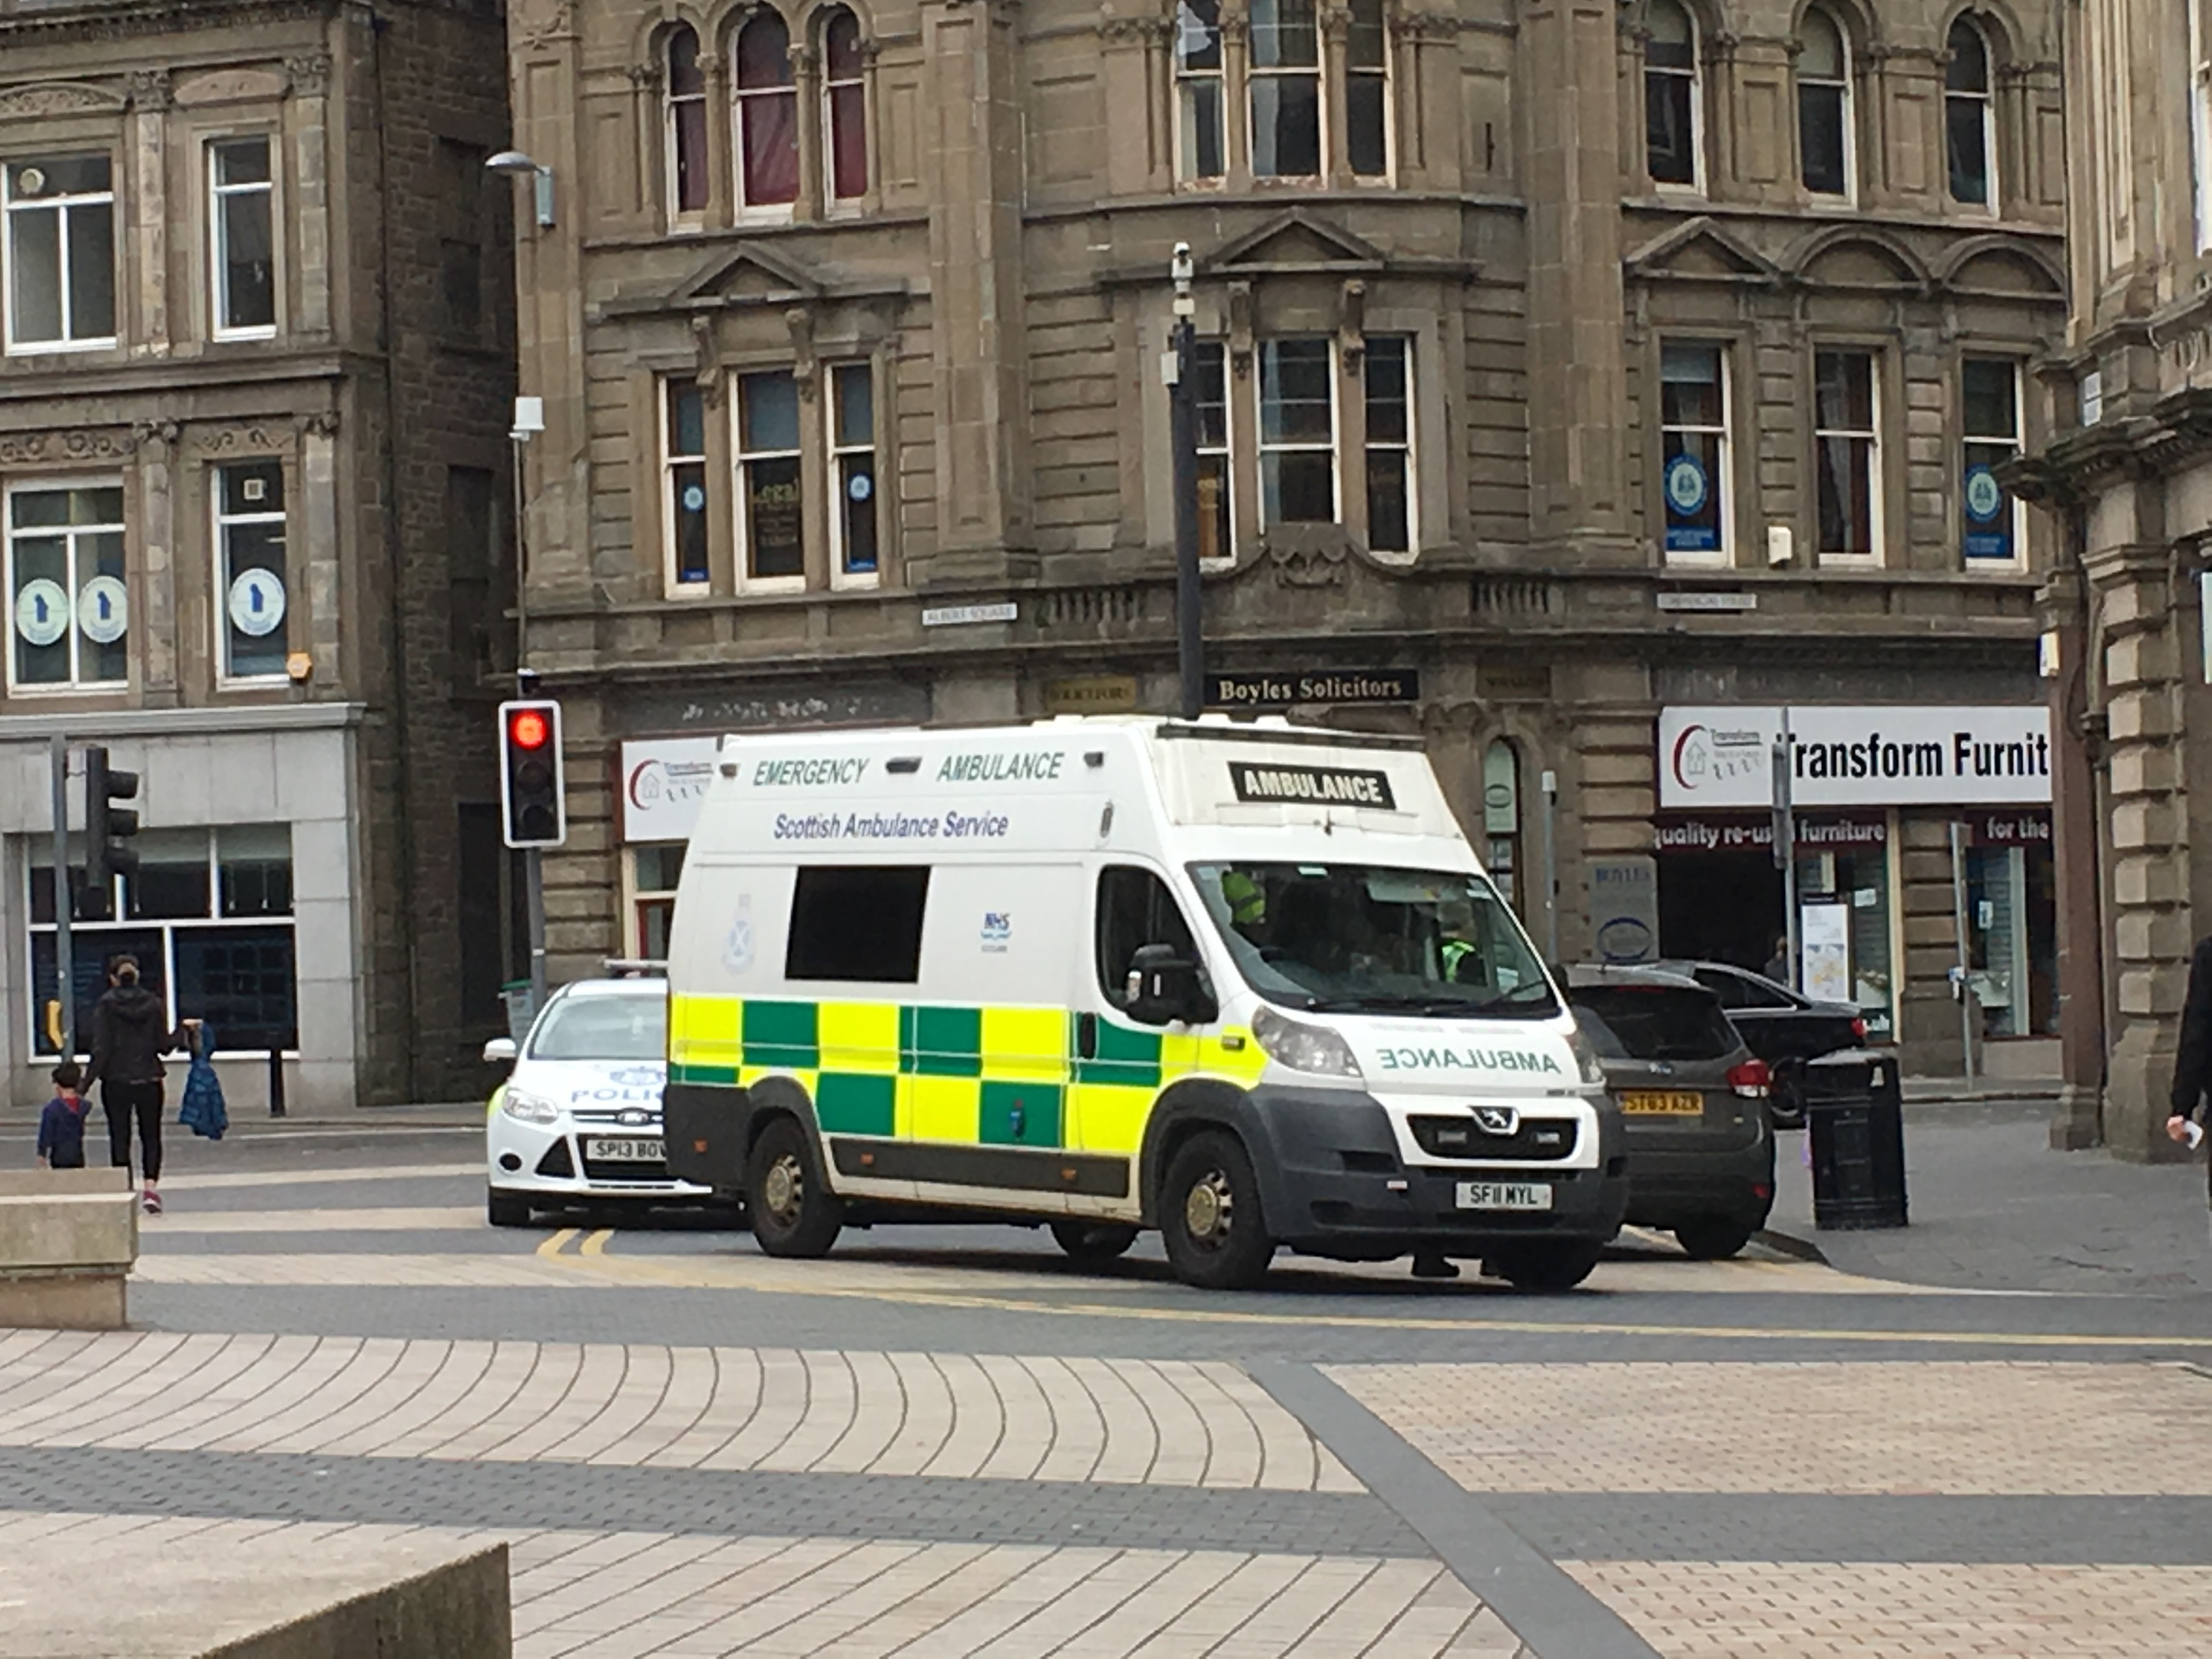 The ambulance service and police were in Albert Square.